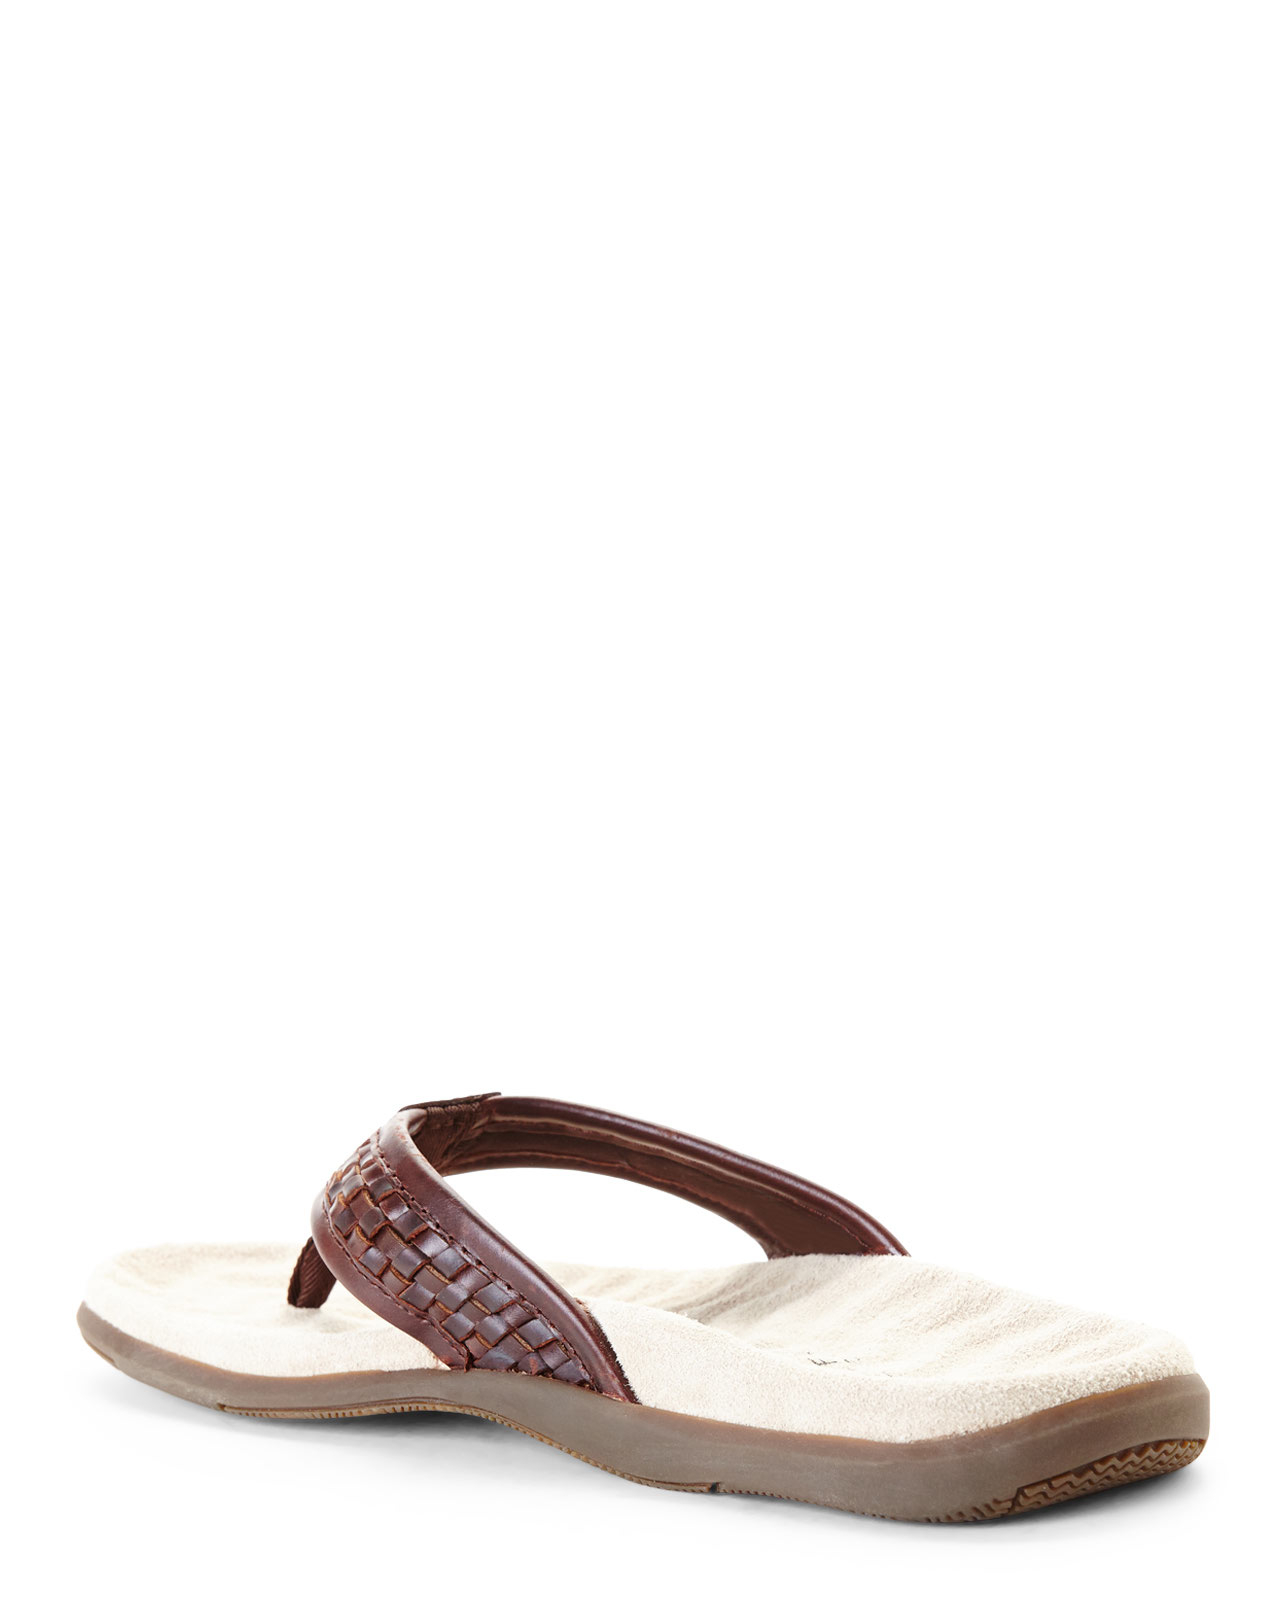 4c35e25a5186 Lyst - Sperry Top-Sider Brown Largo Flip Flops in Brown for Men